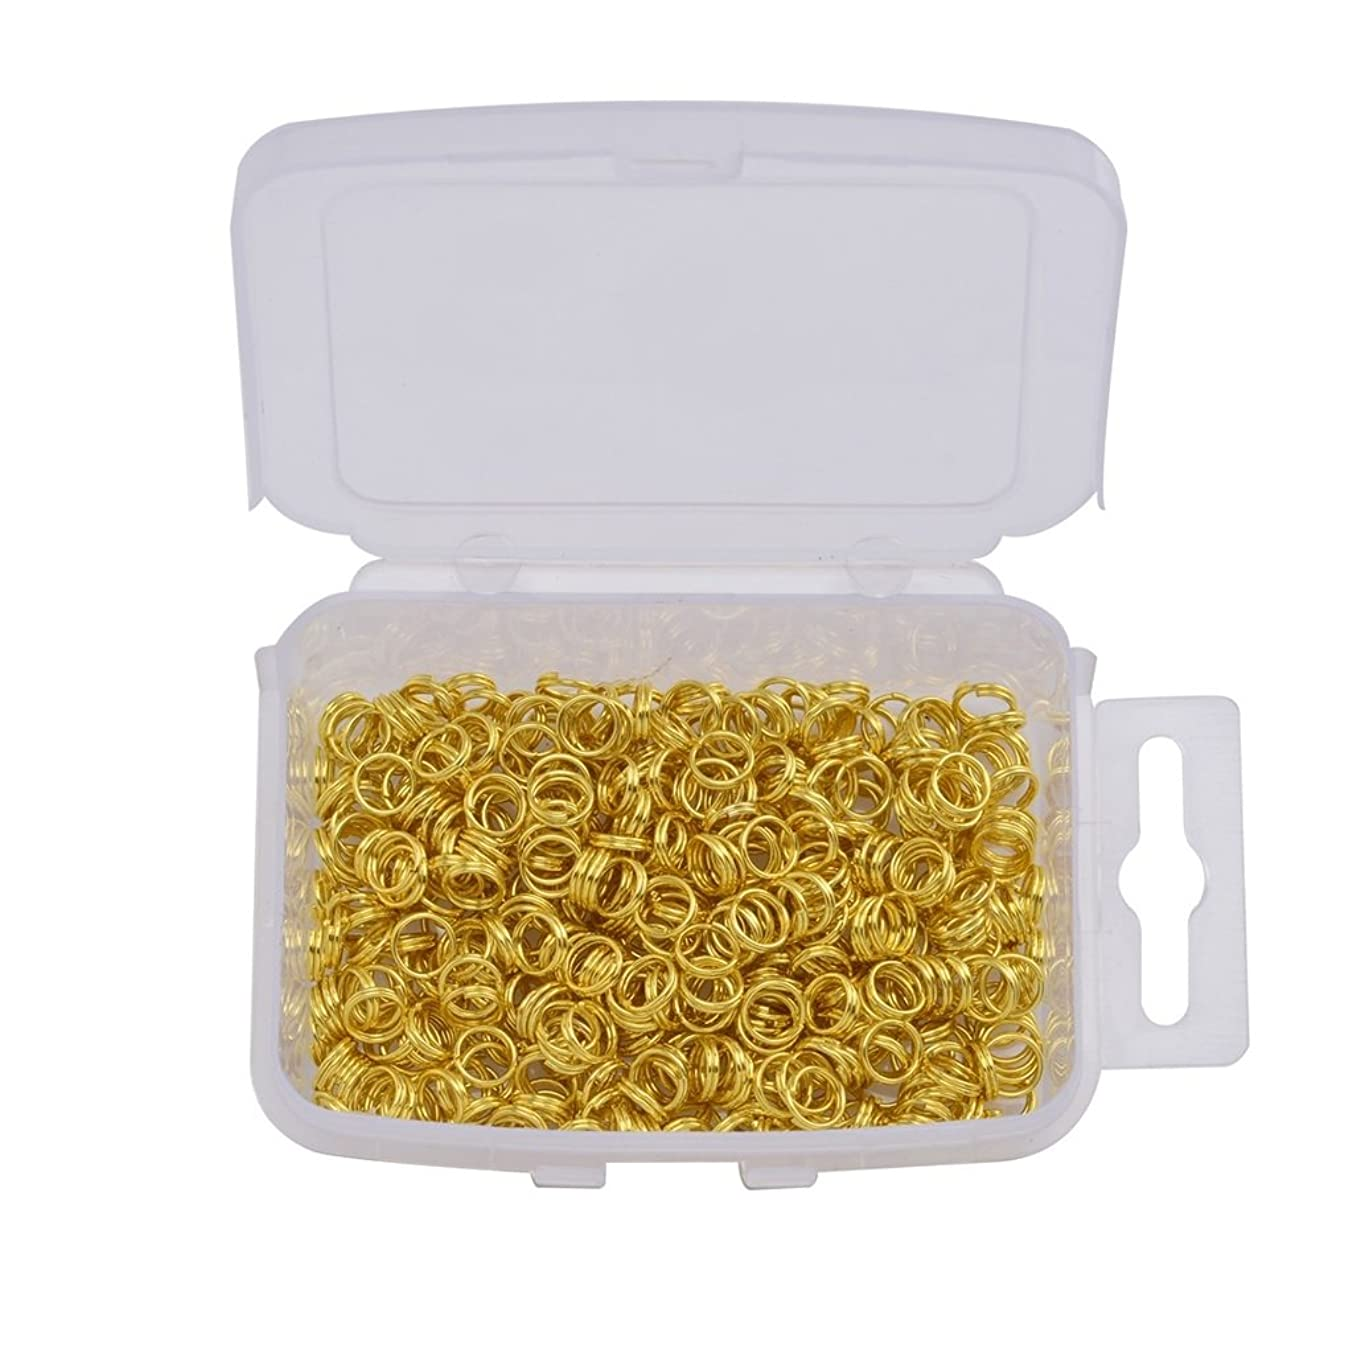 Yumei Jewelry 500 Pcs Gold tone Double Loops Round Split Jump Rings Wire Connector for Charms